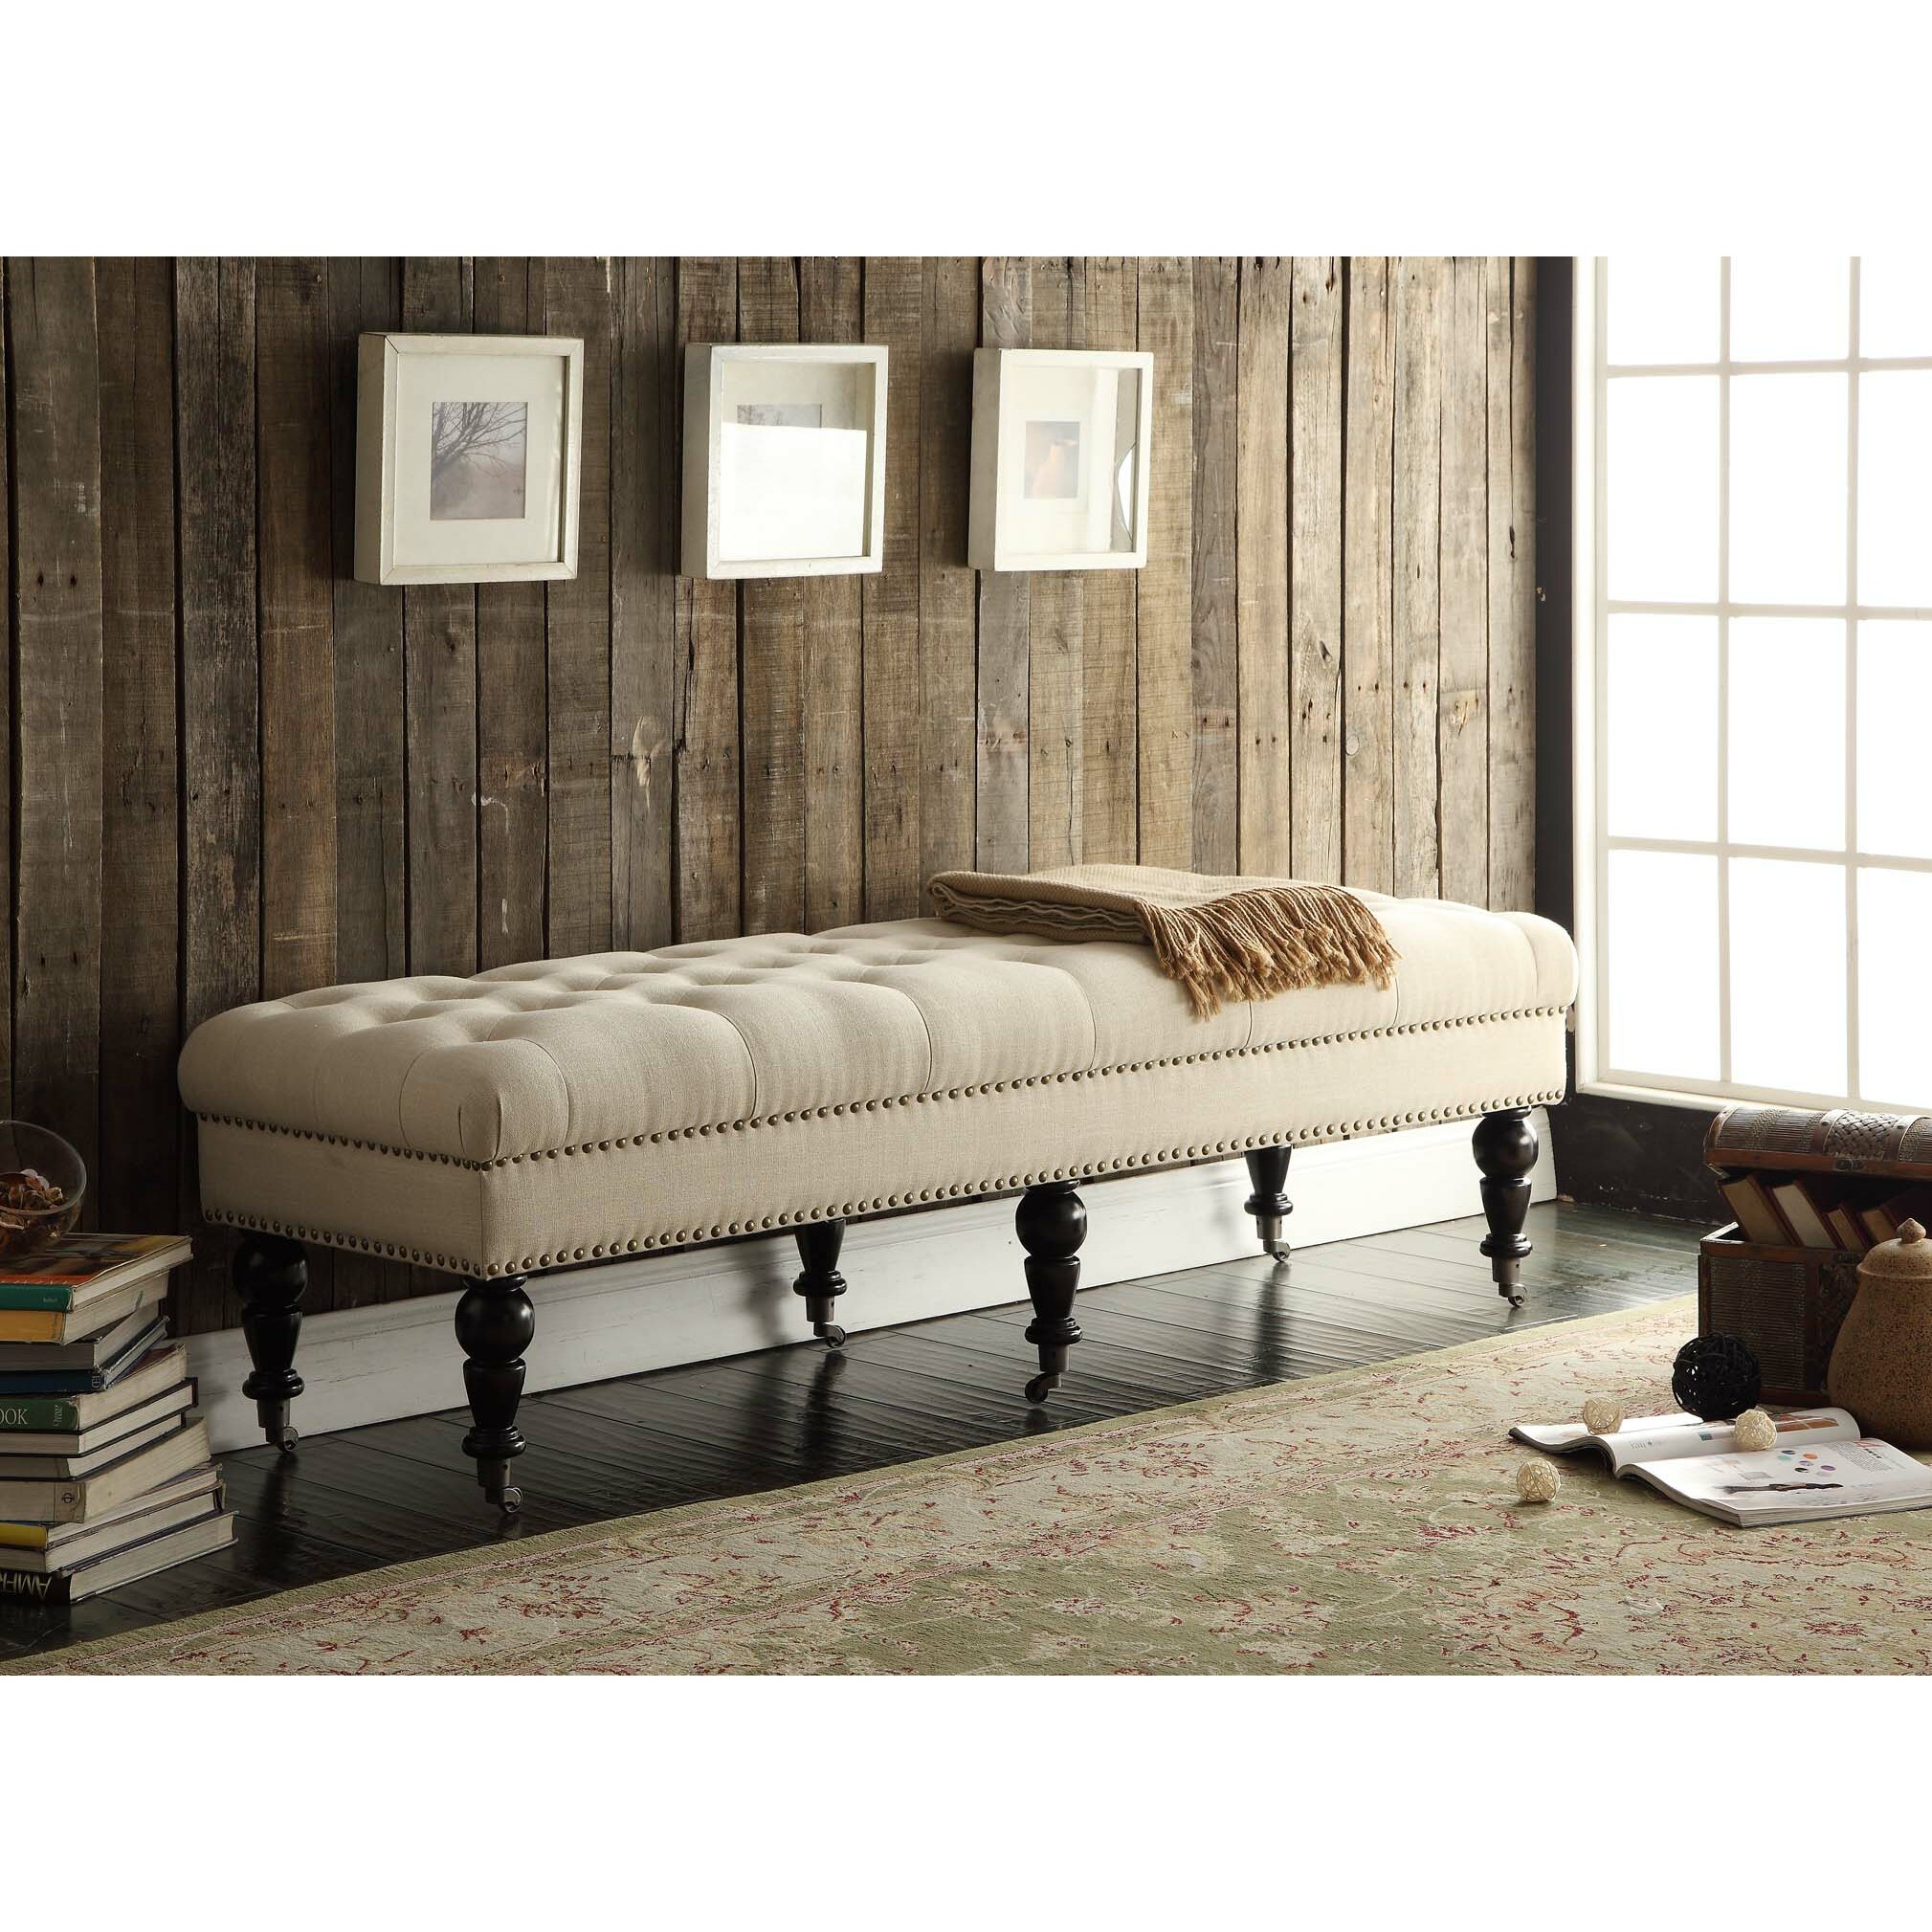 Padded Benches Living Room Charlton Home Driffield Upholstered Bedroom Bench Reviews Wayfair